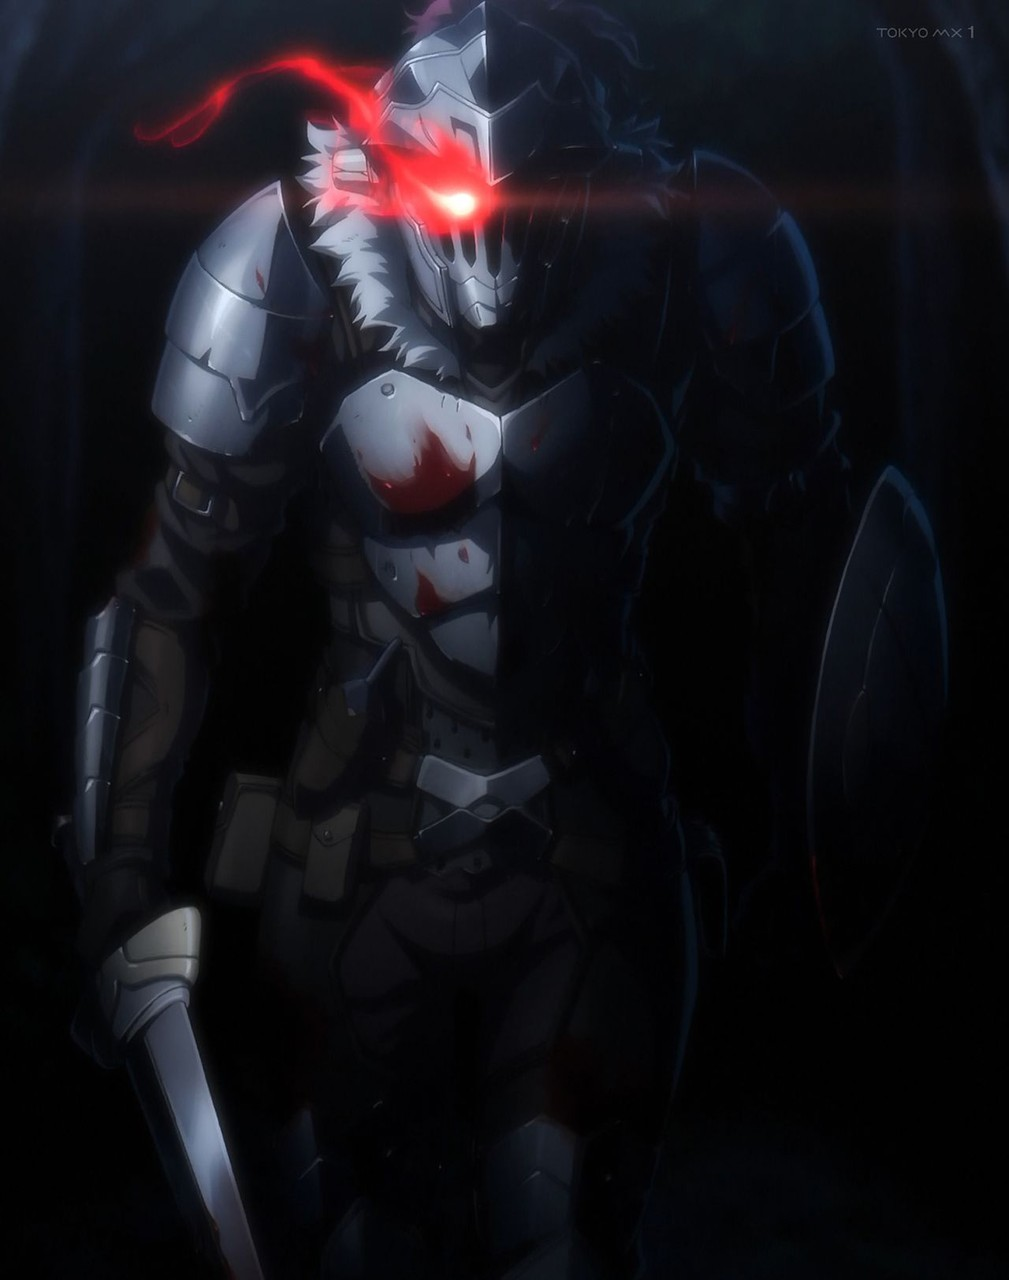 Goblin Slayer - Capítulo 11